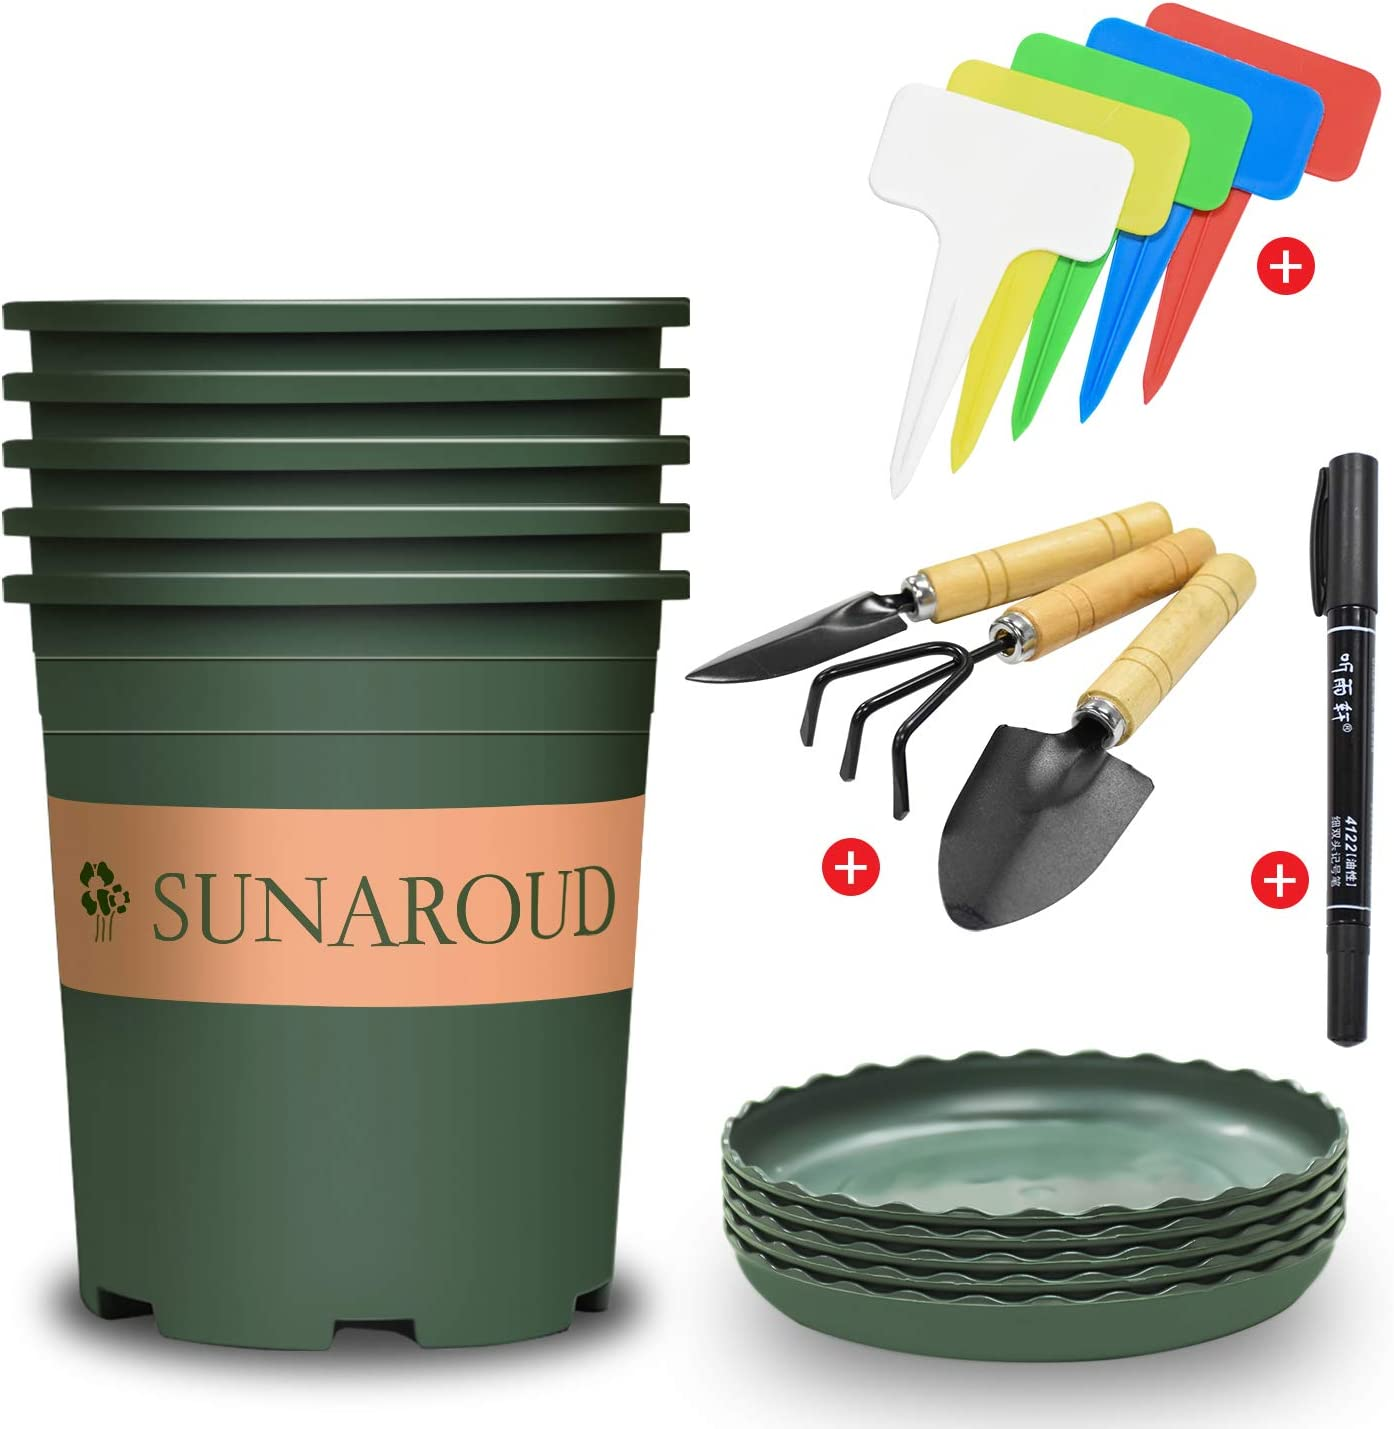 Planter Nursery Garden Pots with Drainage Trays (1 Gallon ), Flower Pots with 5 Labels, 1 Waterproof Pen and 3 Small Shovel Spade, Plastic pots Set for Plants Indoor Outdoor Fit Flowers, Vegetables